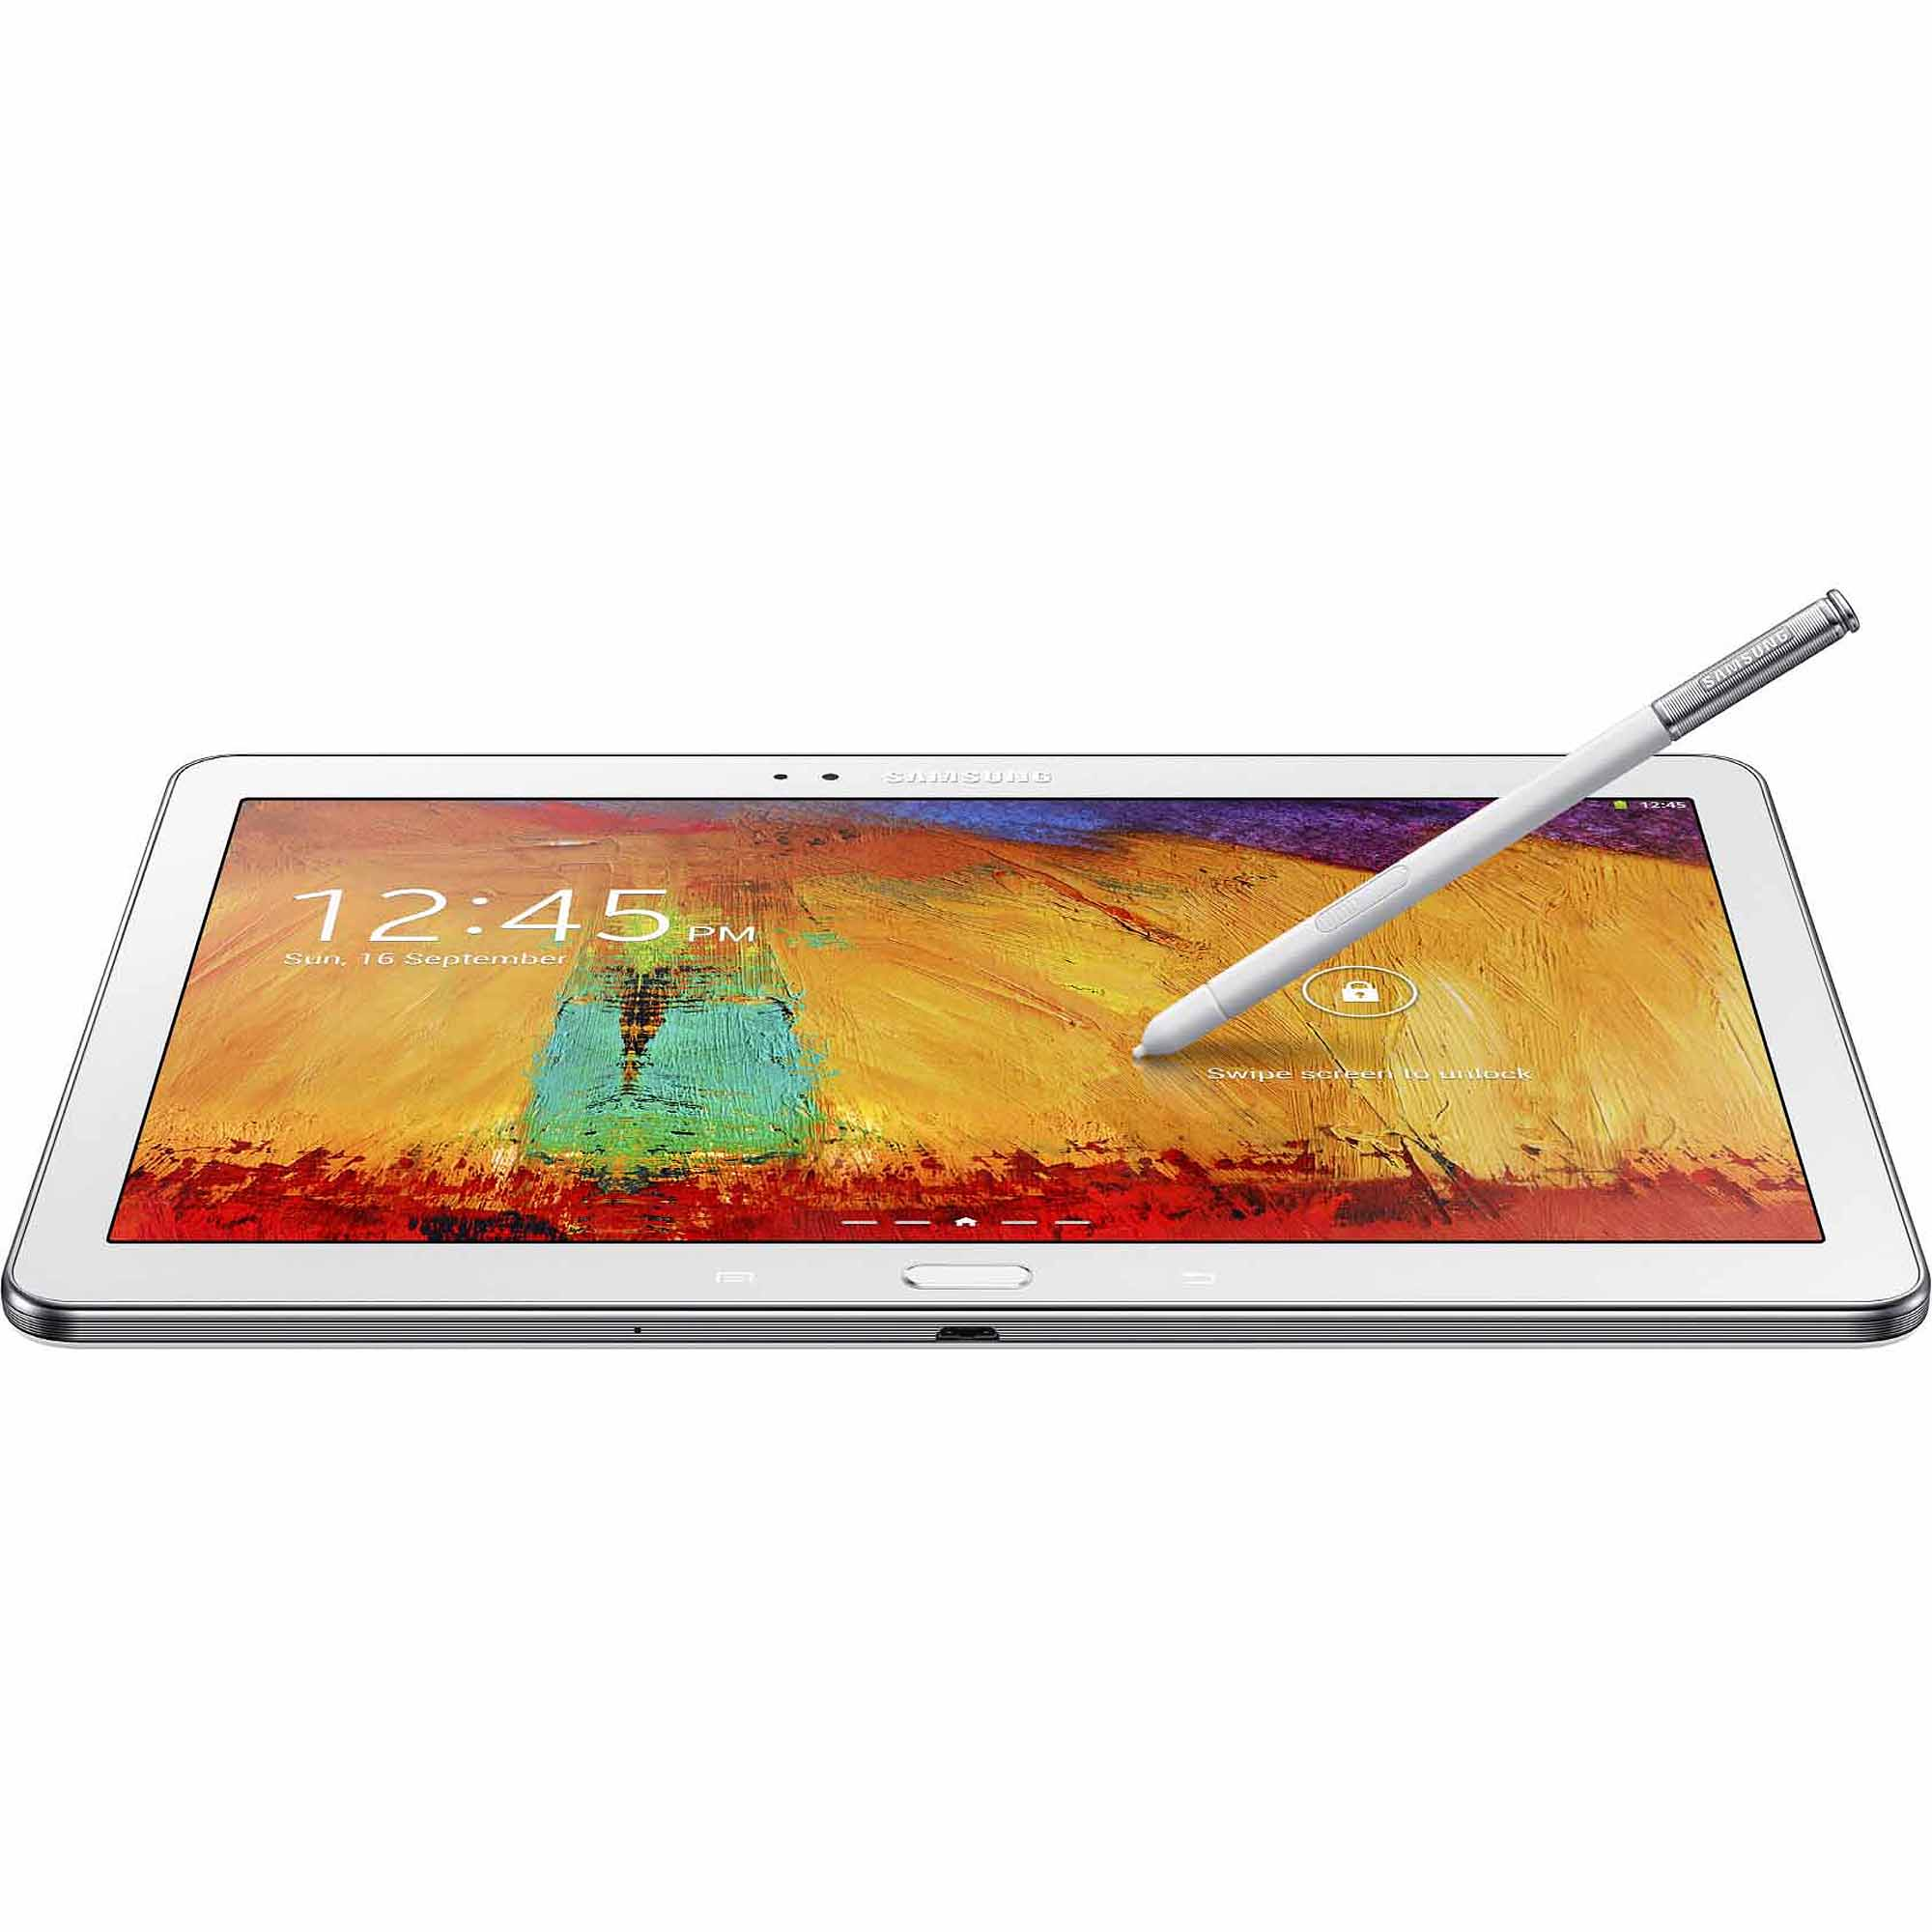 How to use scrapbook on galaxy note 10.1